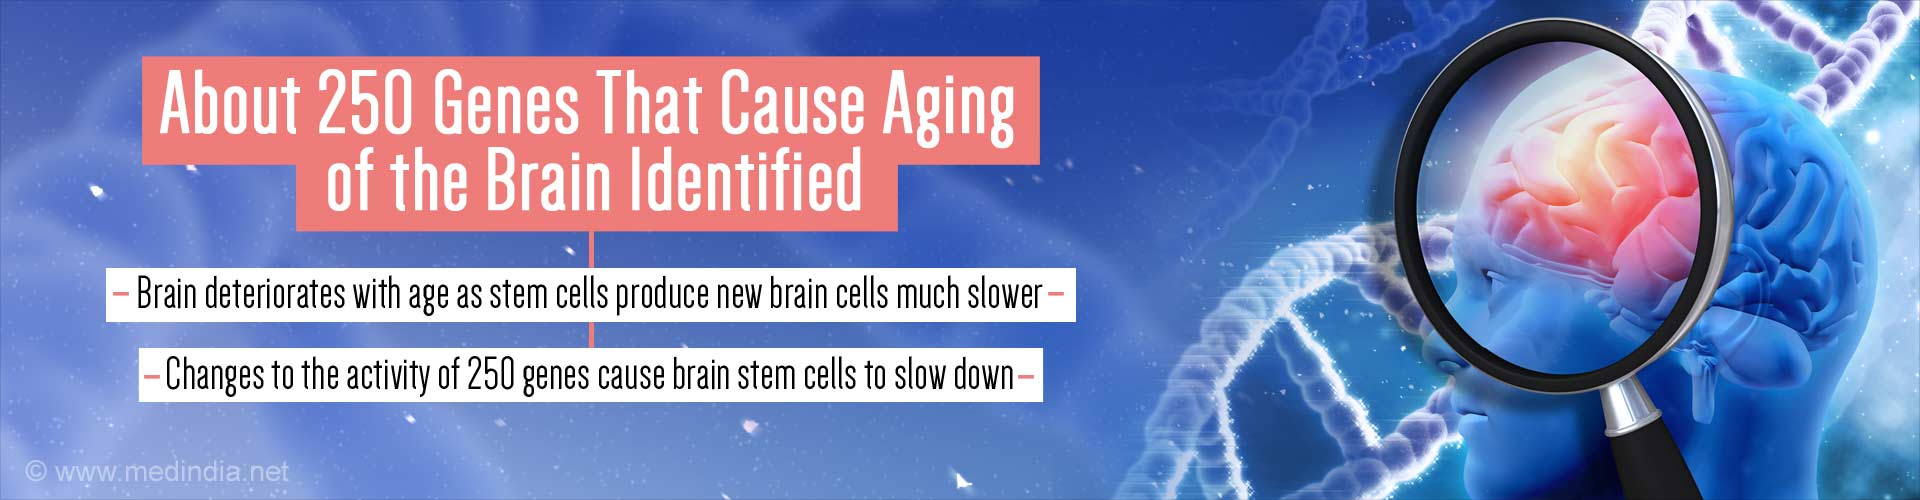 About 250 Genes That Cause Aging of the Brain Identified